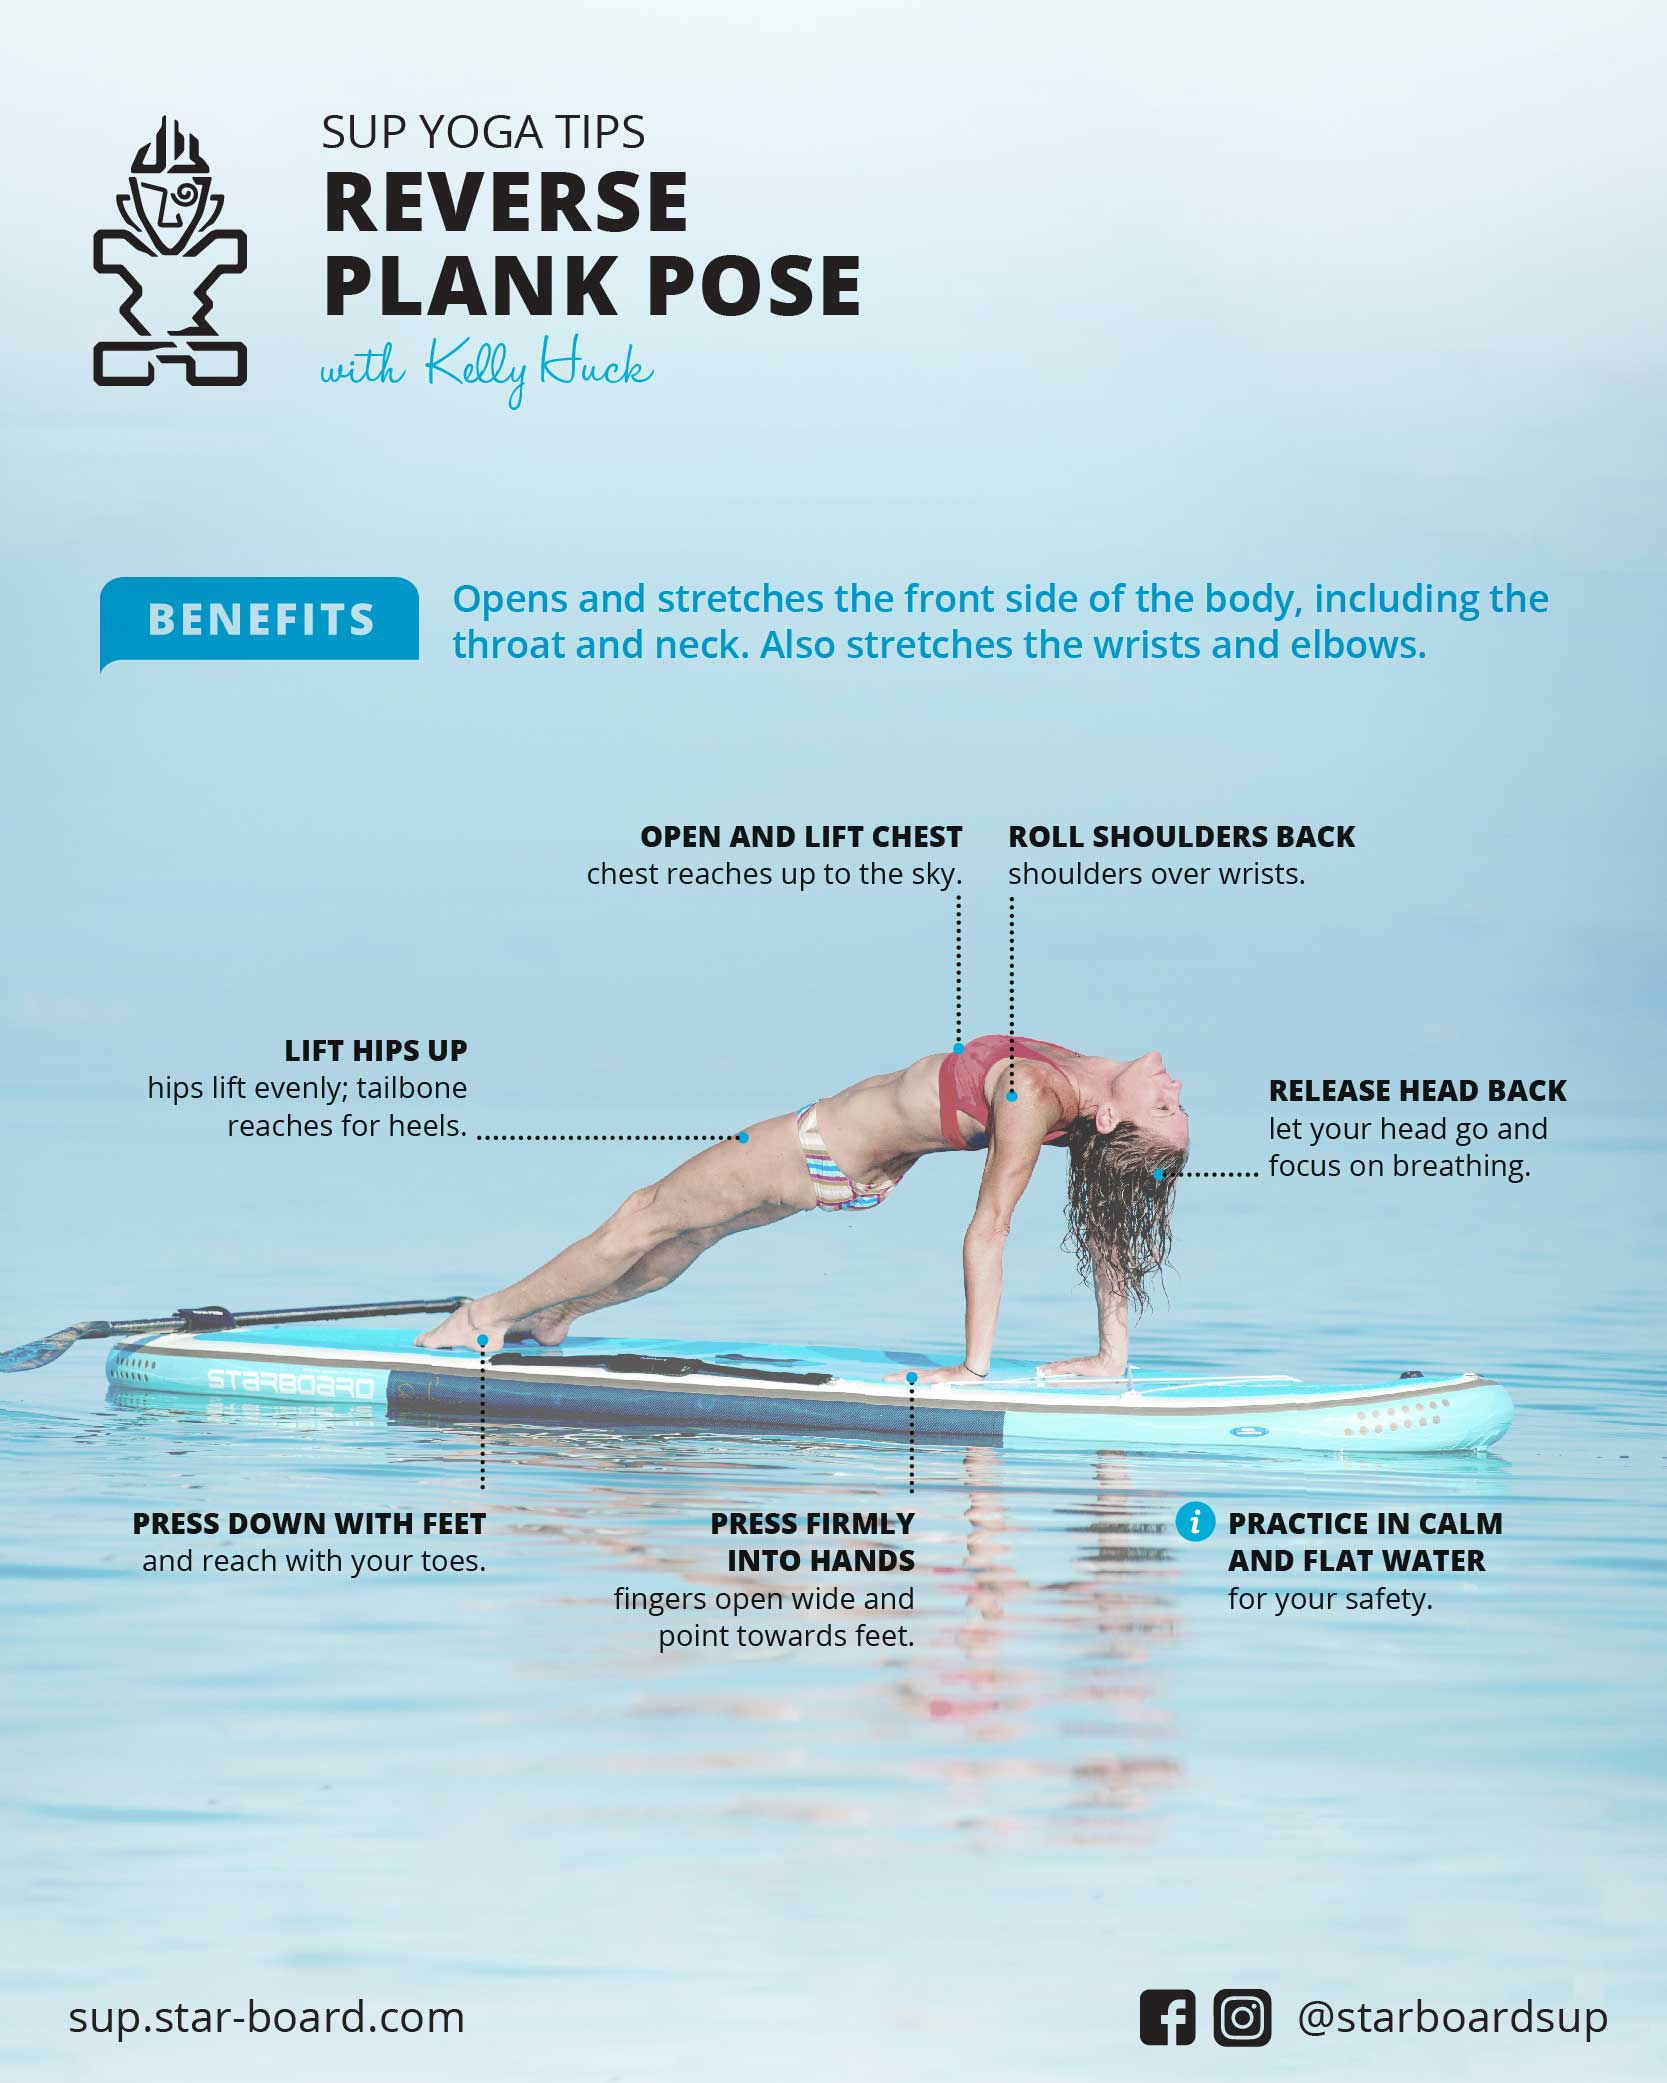 SUP Yoga Tips: How To Do a Reverse Plank Pose with Kelly Huck - Starboard